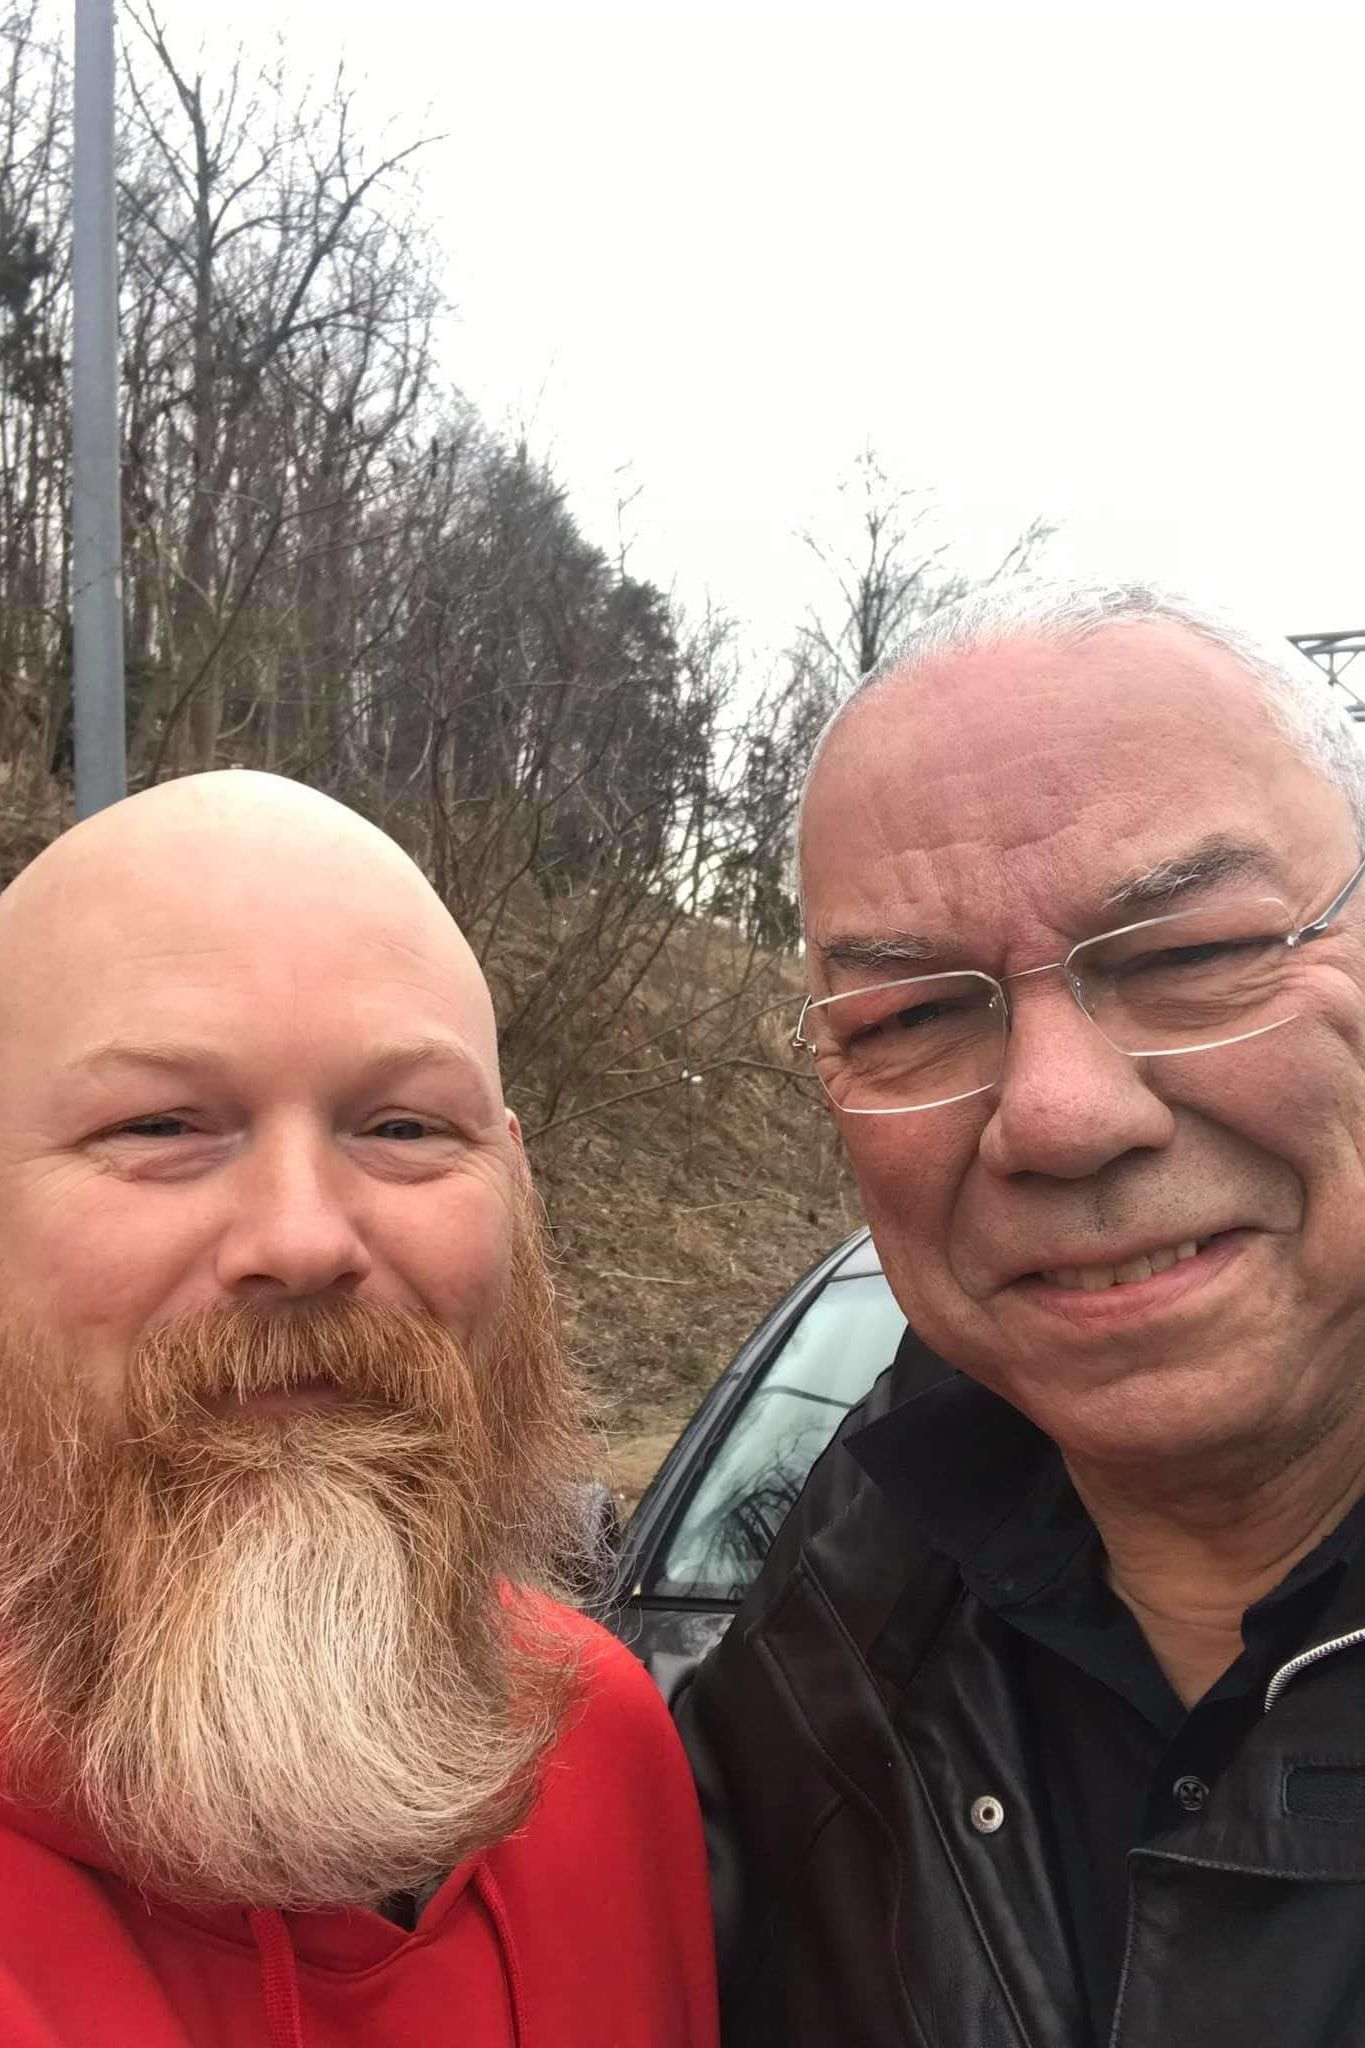 Disabled Veteran Pulls Over to Help Stranded Motorist, Colin Powell